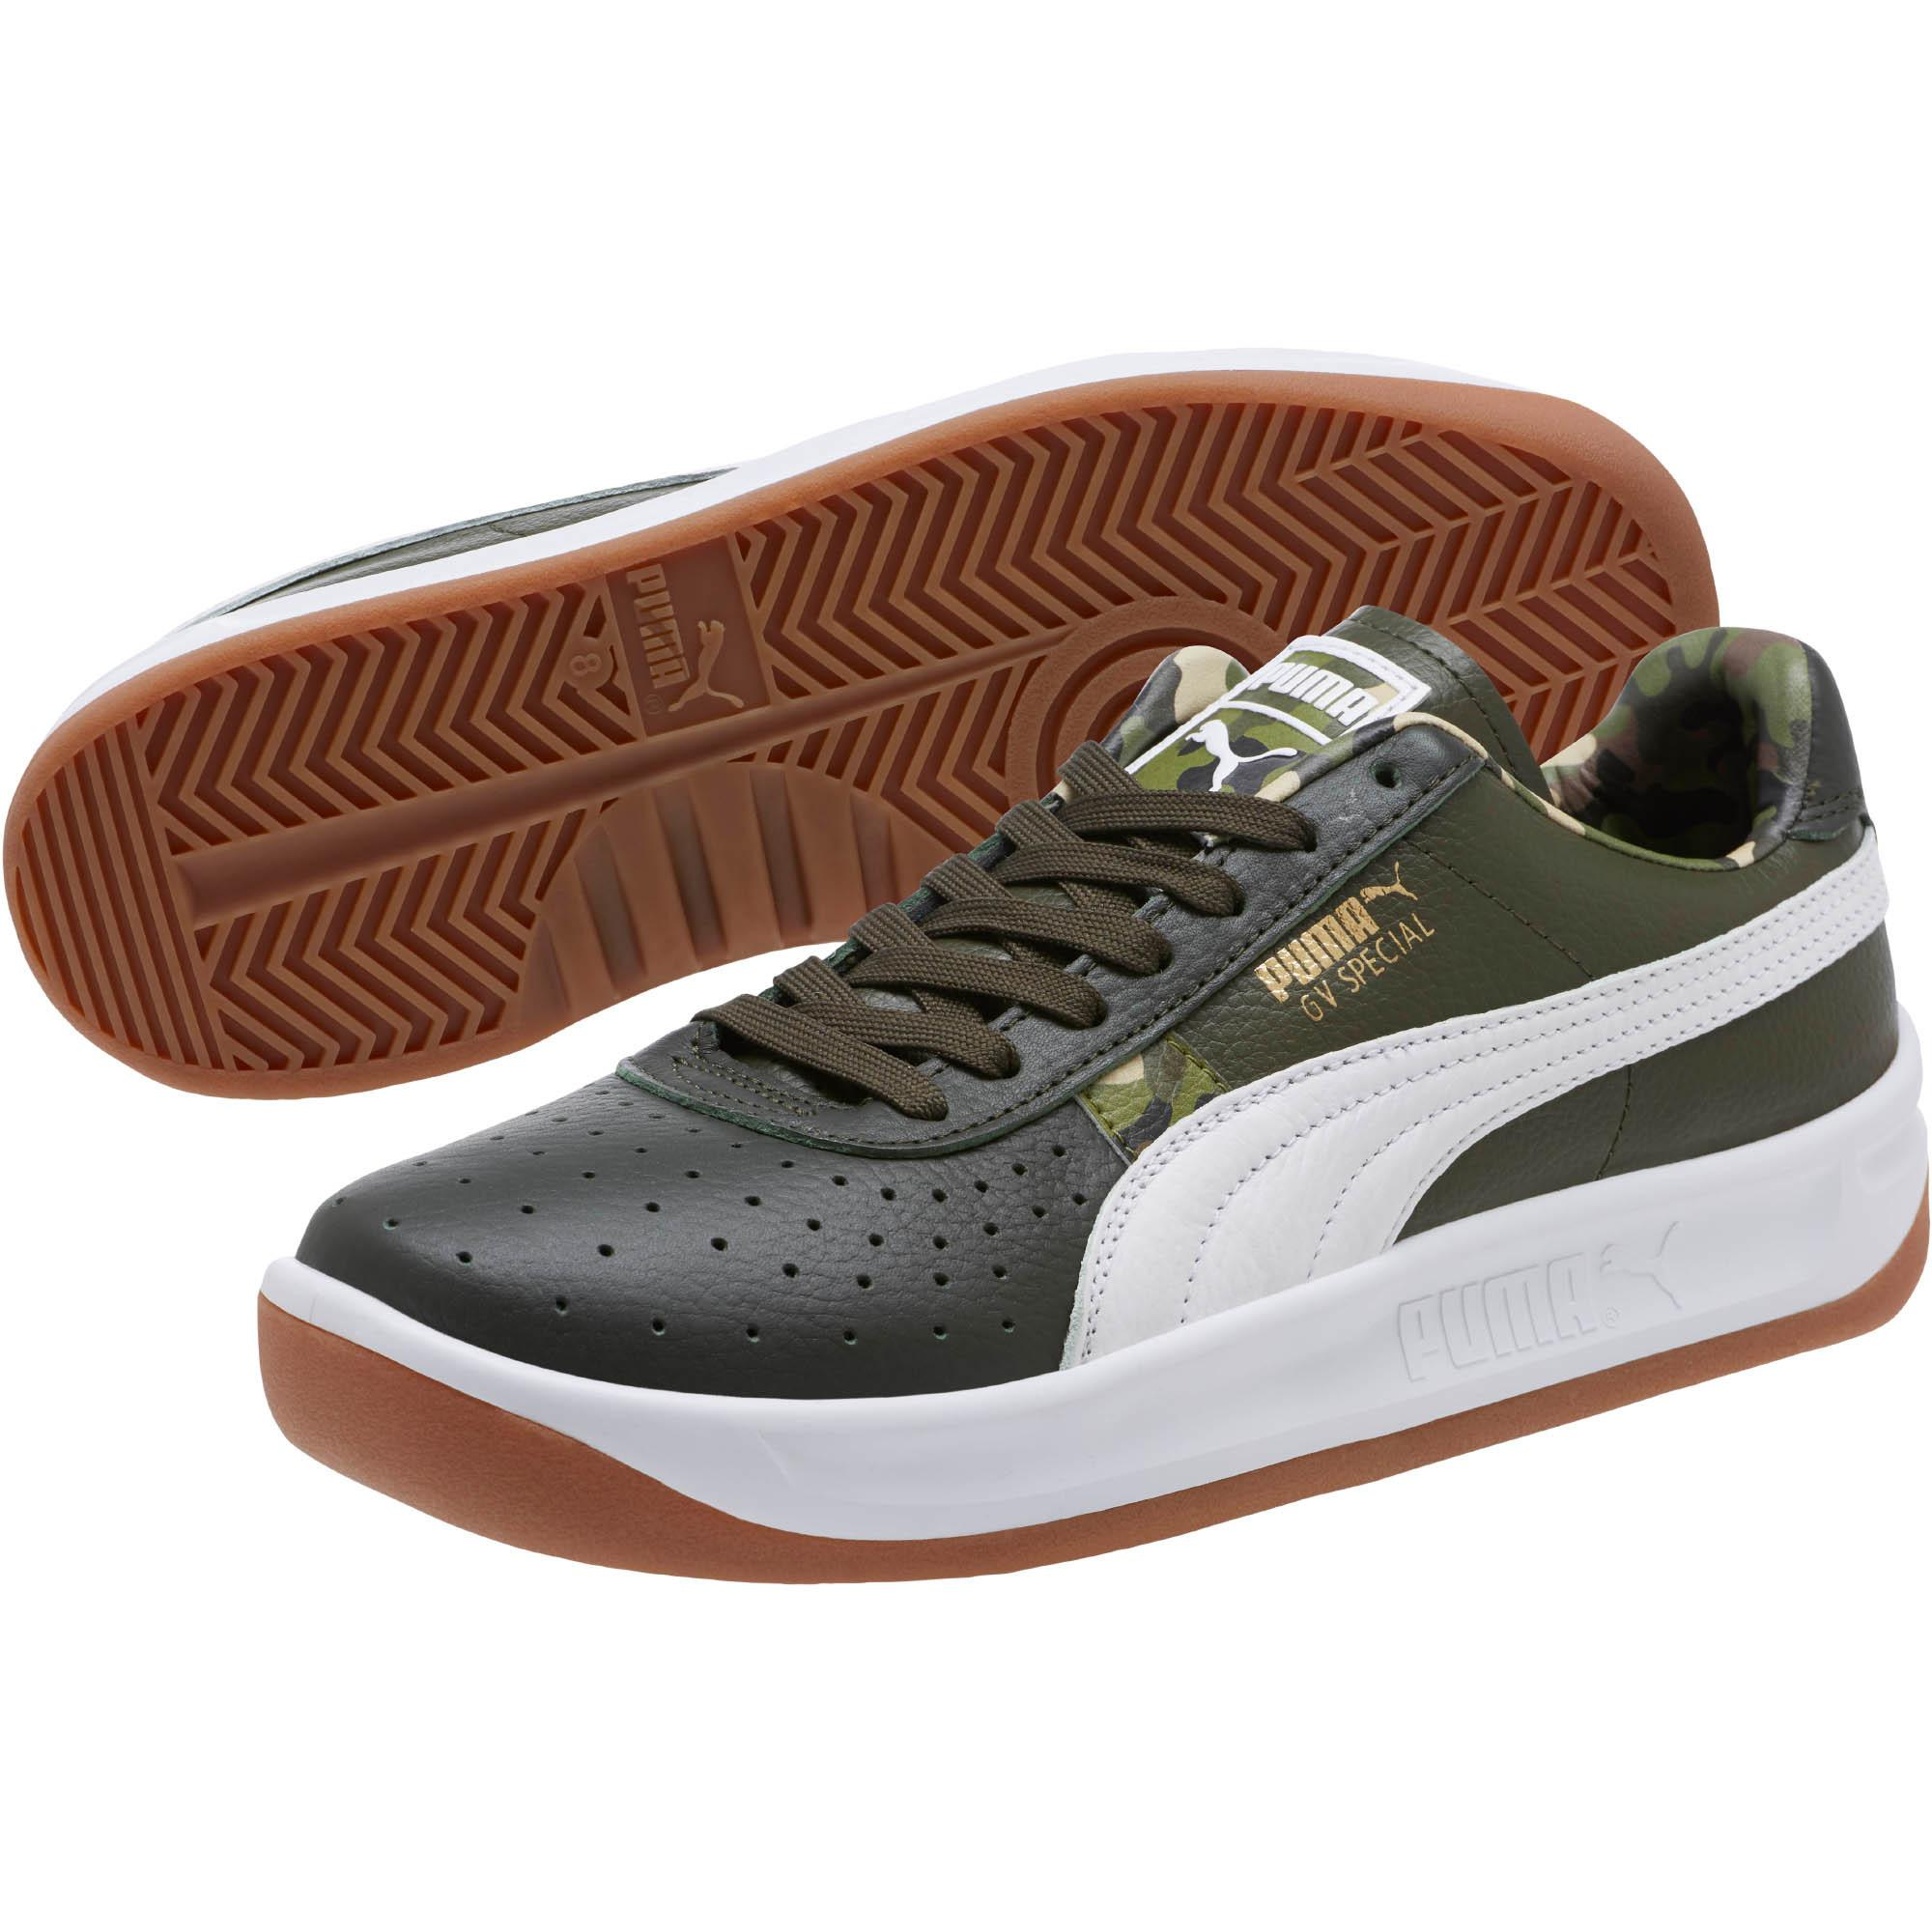 f034beb9ab57 Lyst - PUMA Gv Special Wild Camo Sneakers for Men